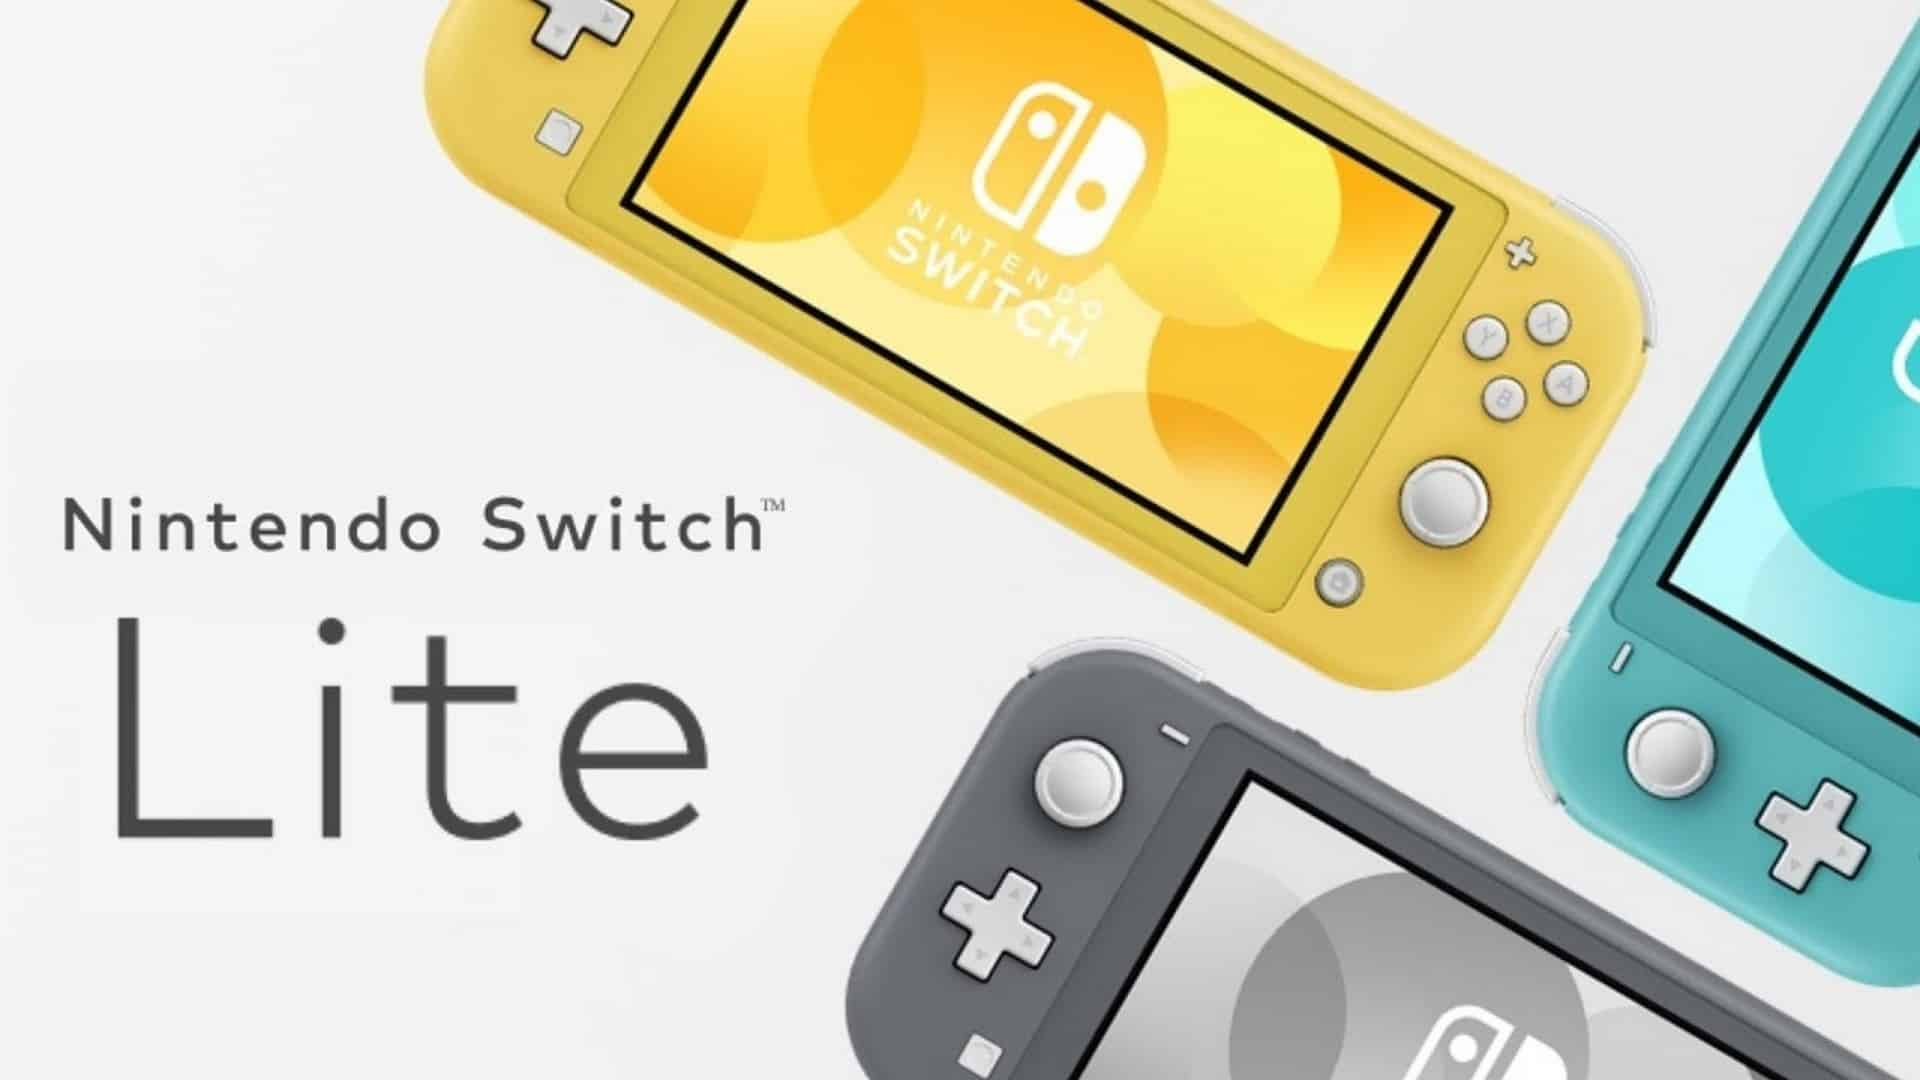 Nintendo Switch Family Grows With Today's Launch Of Nintendo Switch Lite